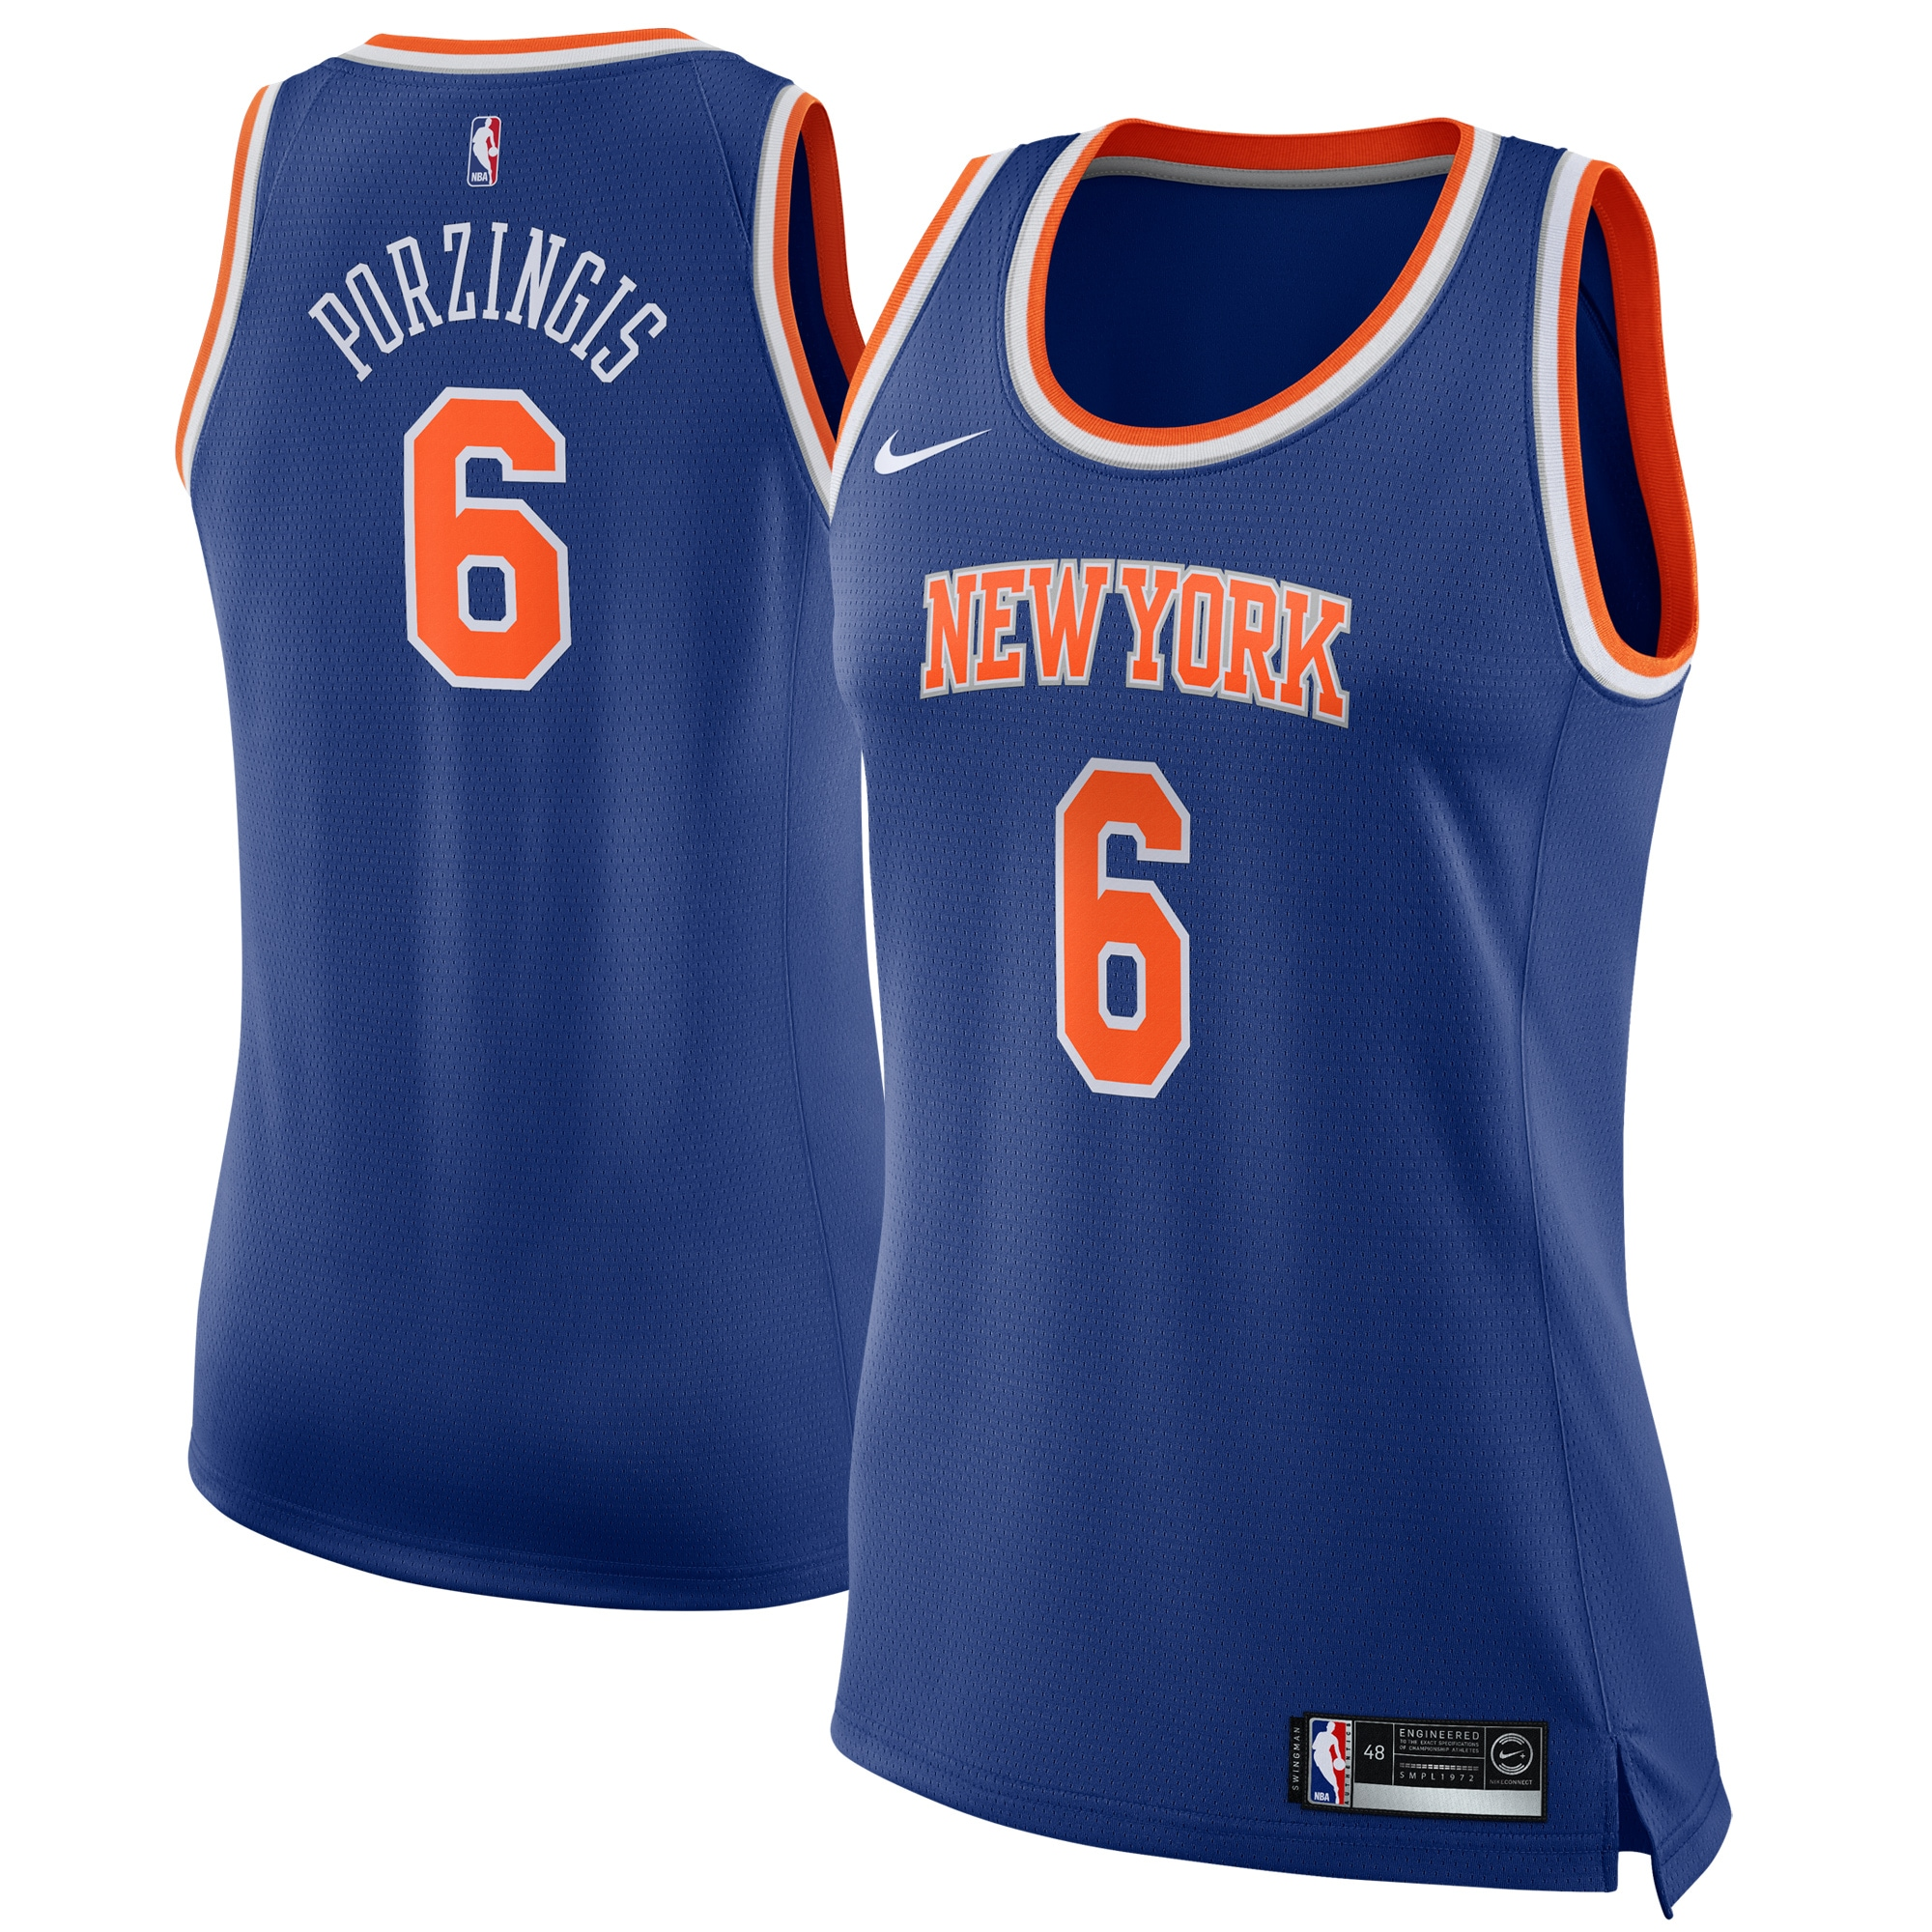 Kristaps Porzingis New York Knicks Nike Women's Swingman Jersey Blue - Icon Edition